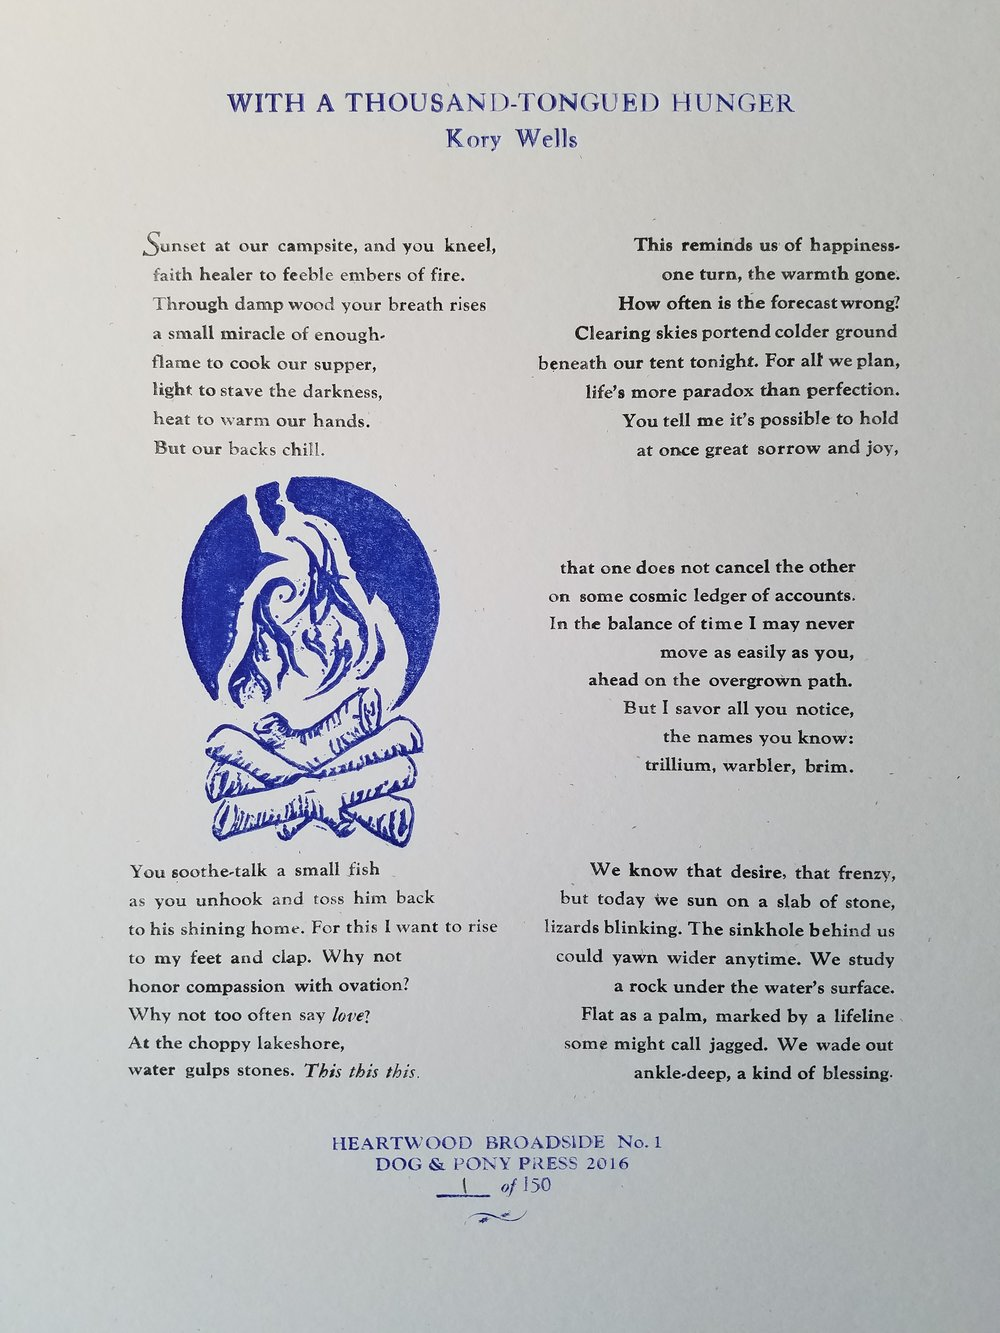 Broadside created by Diane Radford, of Dog & Pony Press. P  aper is 8 1/2 by 11 French Paper Muscletone 140 lb. Speckletone Starch White.   The body of the piece is set in Goudy 10 point and title is in Caslon, printed on a Chandler and Price Old Style treadle operated letterpress.